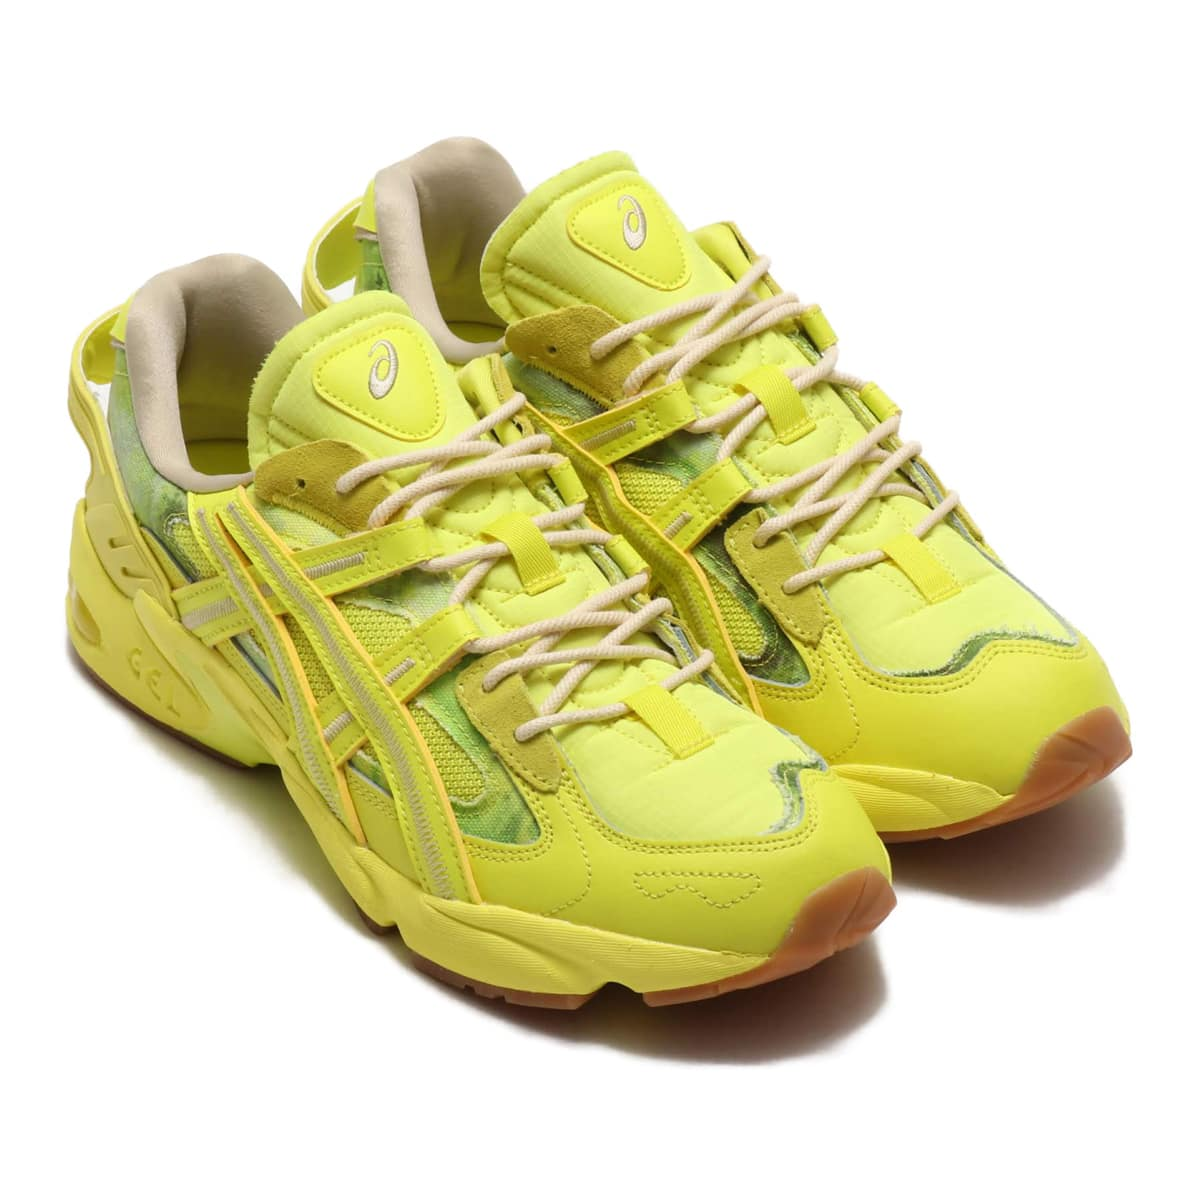 asics GEL-KAYANO 5 RE YELLOW/SYZ 20SS-S_photo_large